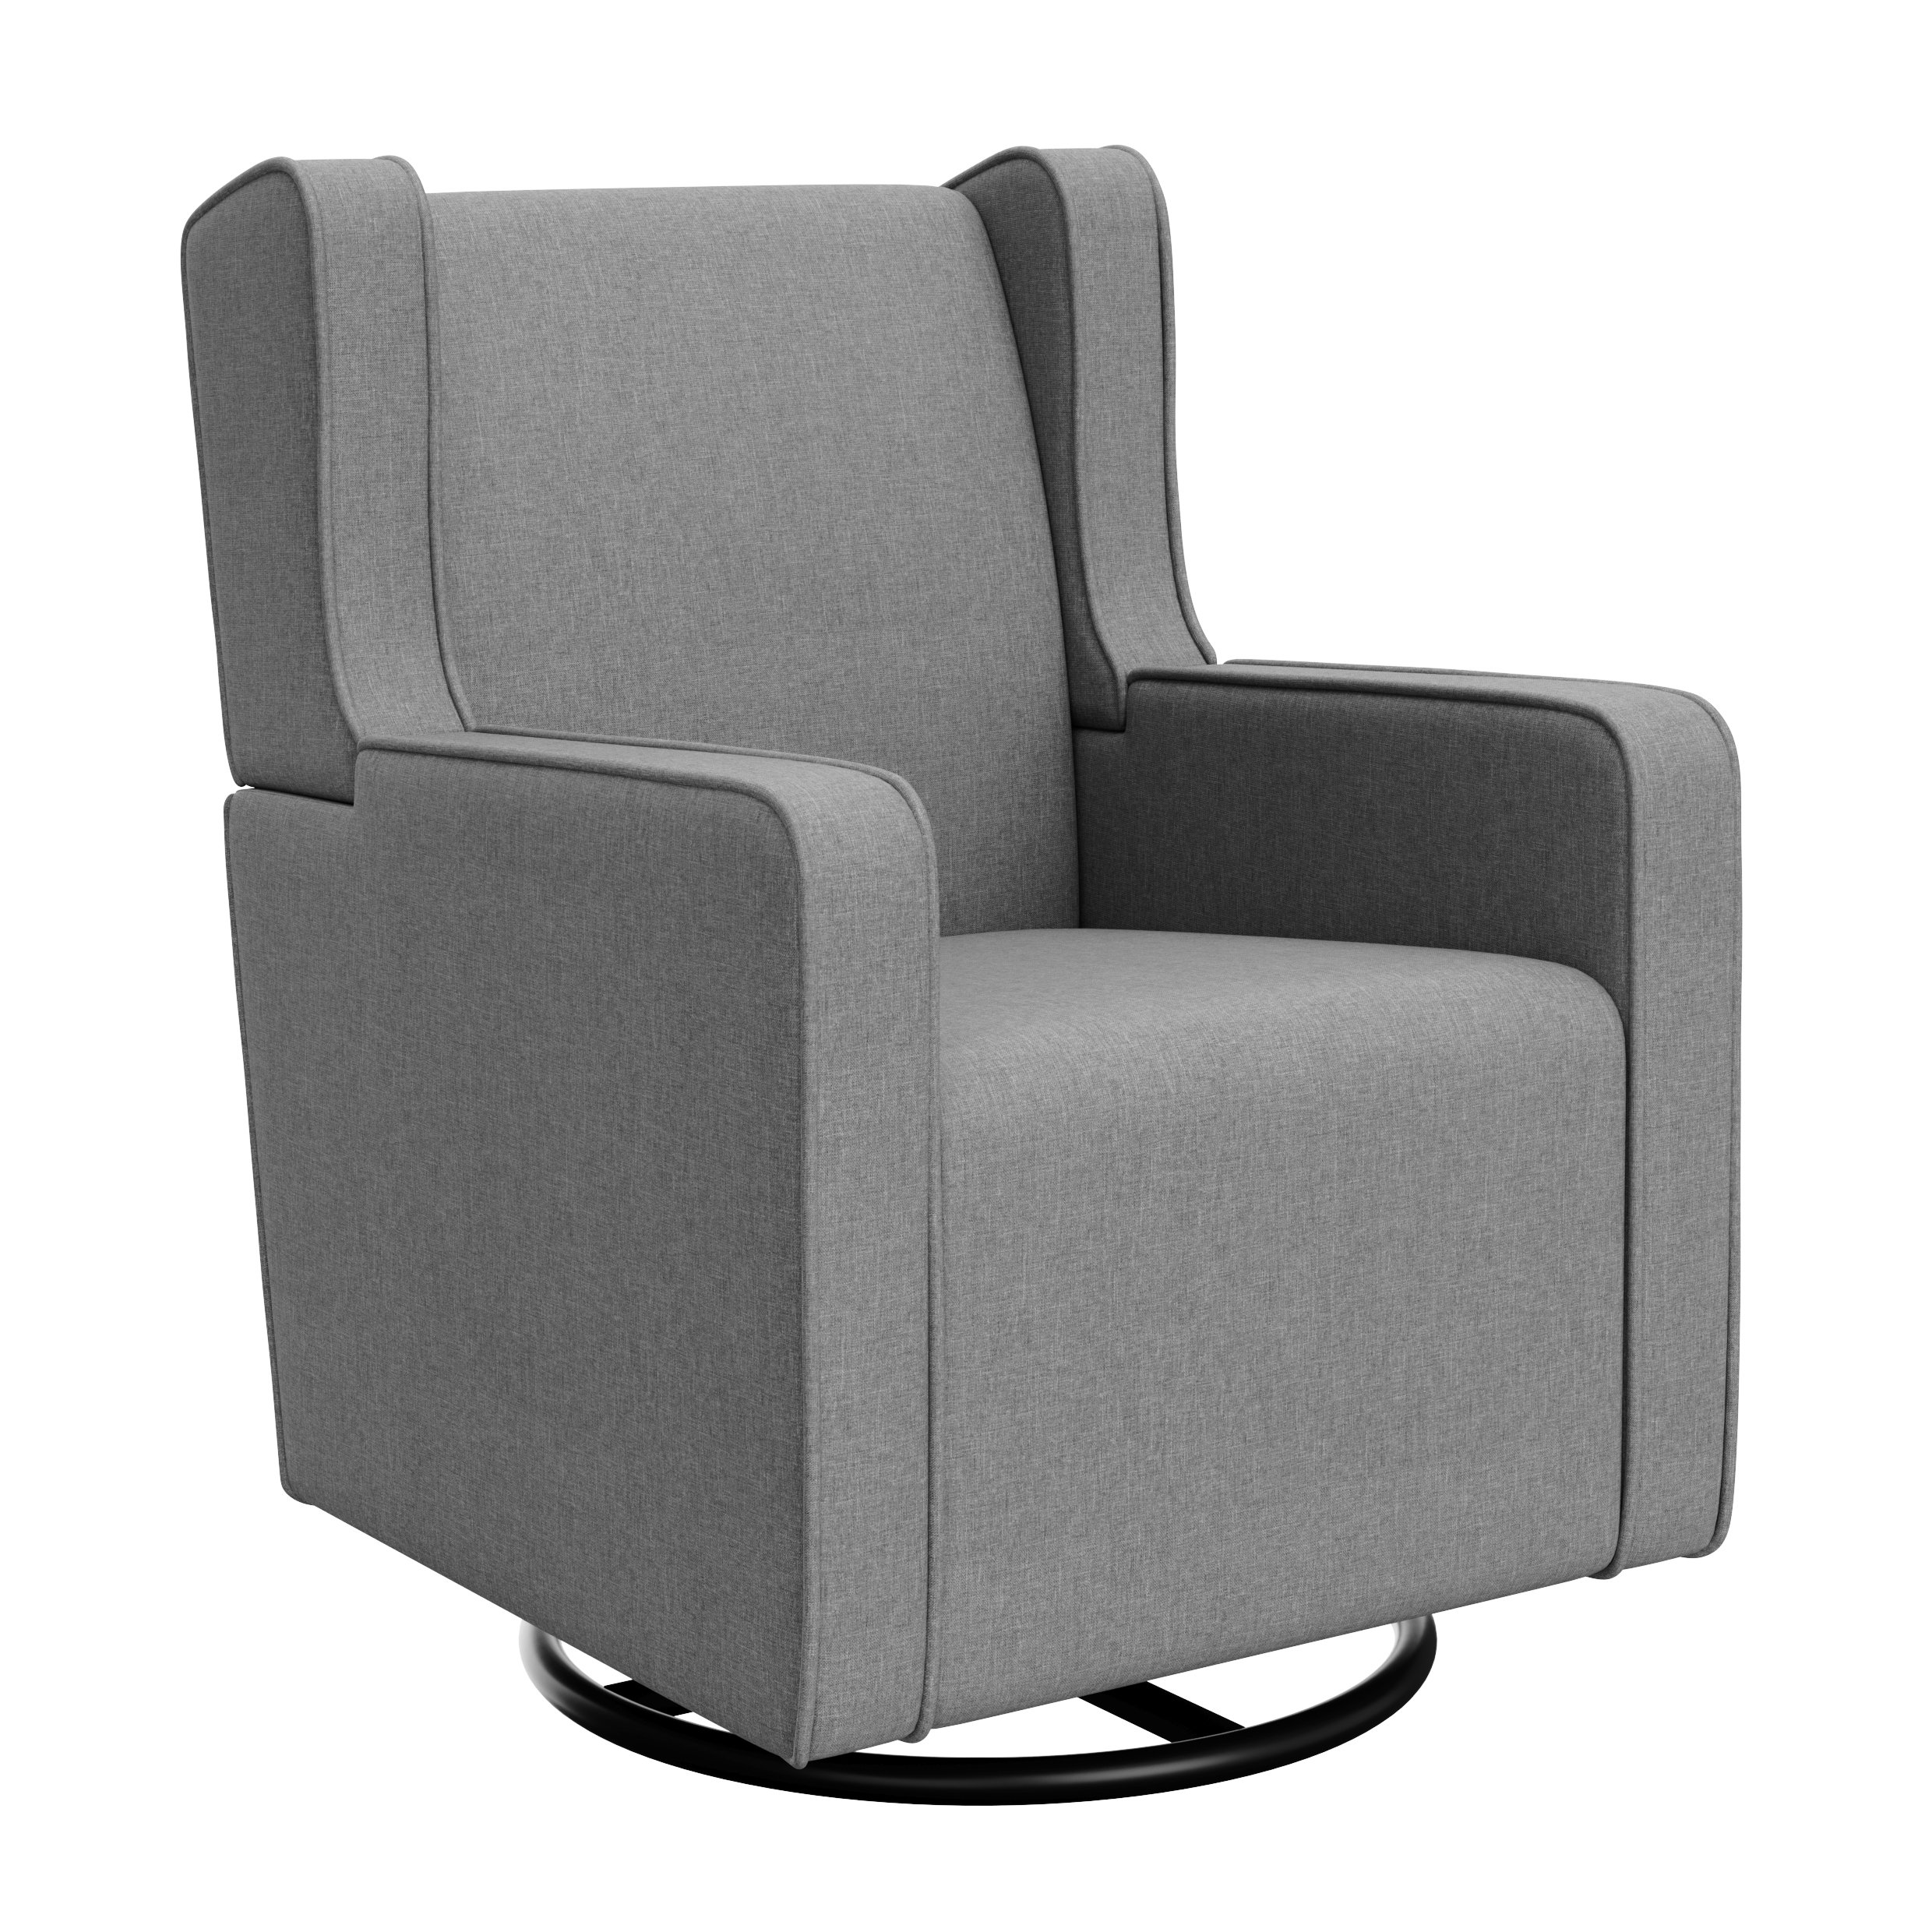 Graco Remi Upholstered Swivel Glider Horizon, Gray, Cleanable Upholstered Comfort Rocking Nursery Swivel Chair by Stork Craft